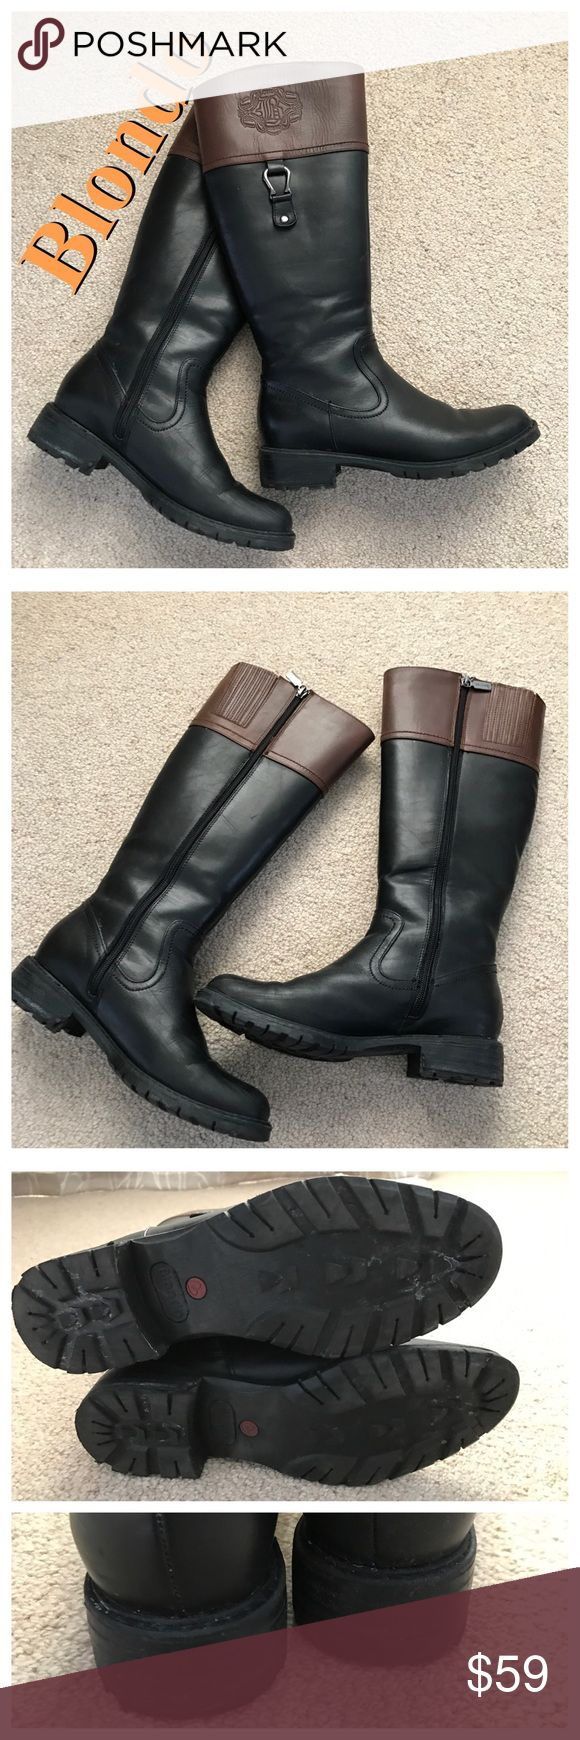 BLONDO Leather Riding Boots Classic riding boot style. Black leather with brown top. Embossed logos at calves. Silver loop hardware at sides. Full side zipper closure. Stretch panels at calves. Rubber lug soles. Lined and water resistant. Minor signs of wear but in overall excellent condition. Blondo Shoes Winter & Rain Boots